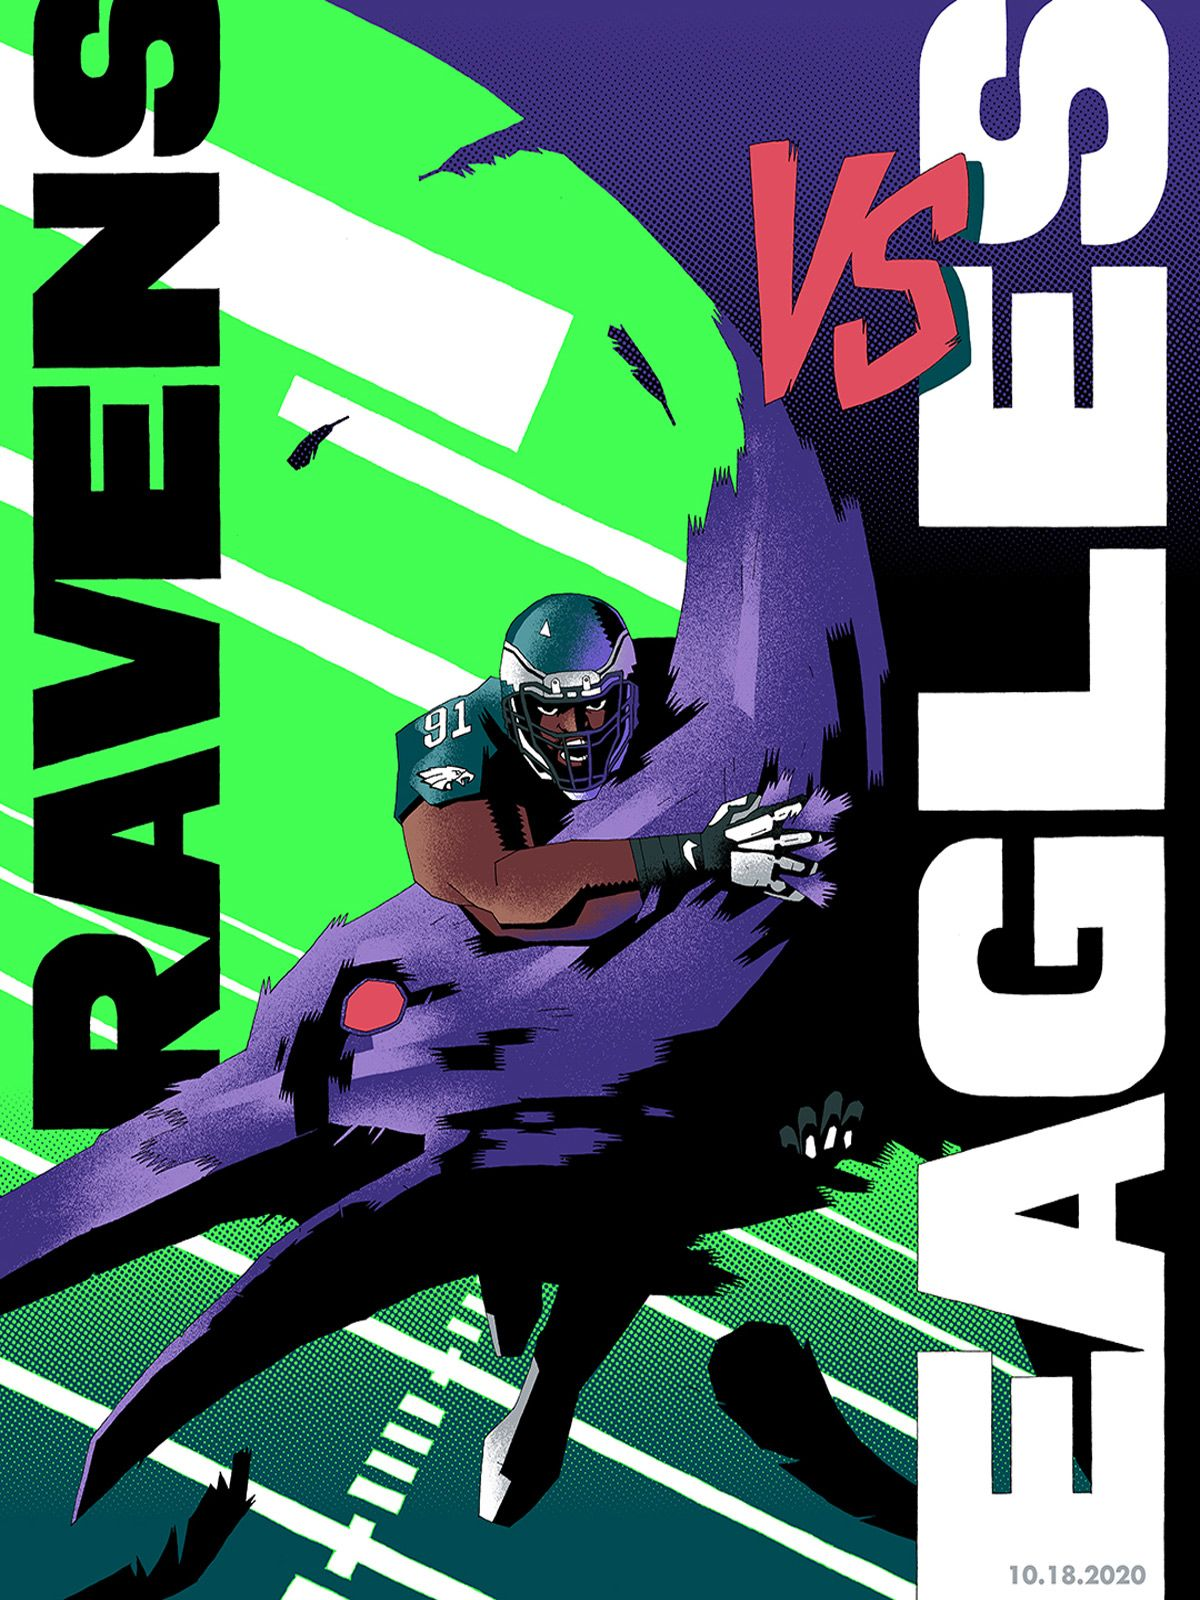 Week 6: Ravens vs. Eagles